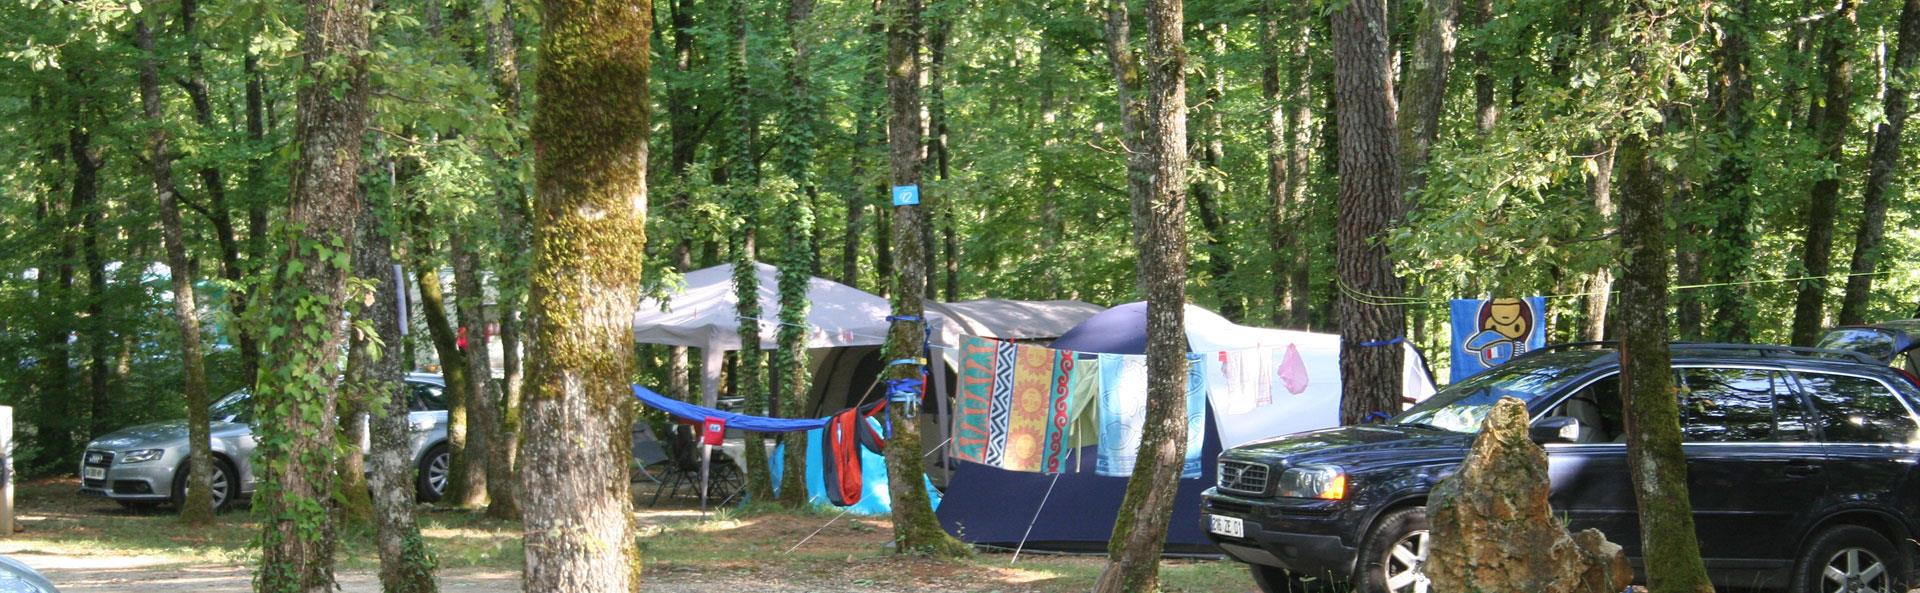 Campsite pitch Lot Quercy campsite - Lot Evasion: campsite in the Lot